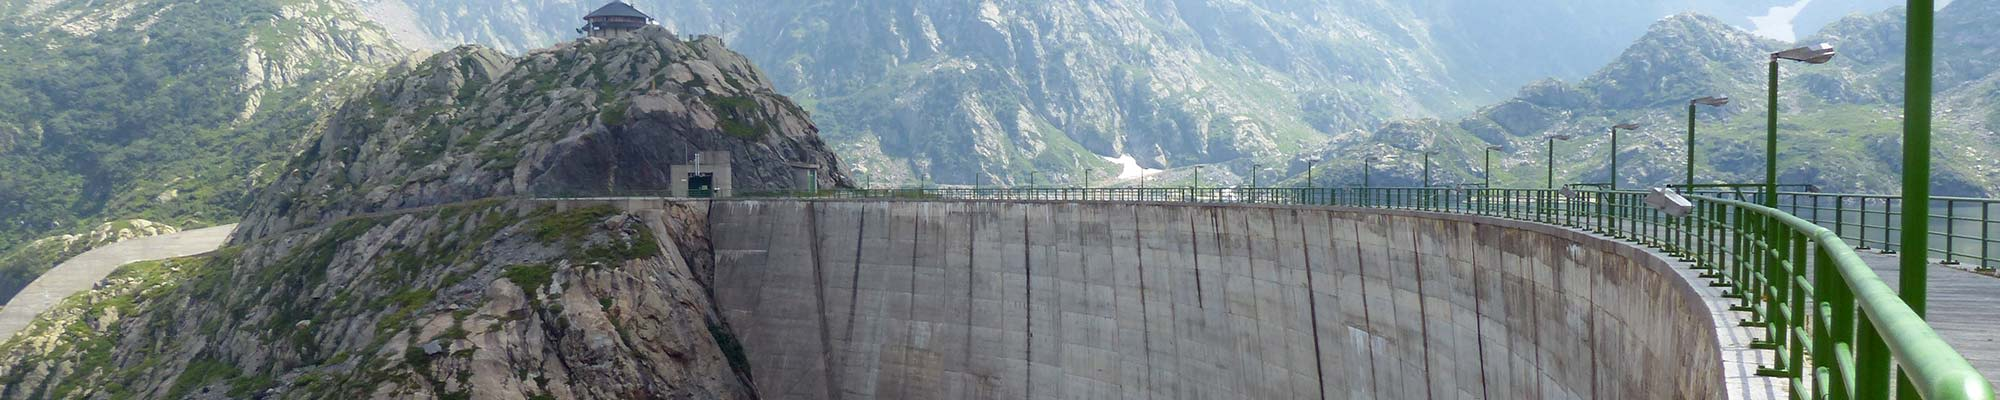 Dam Monitoring—Structural Data Acquisition for Reliable, Stand-Alone Dam-Structure Monitoring